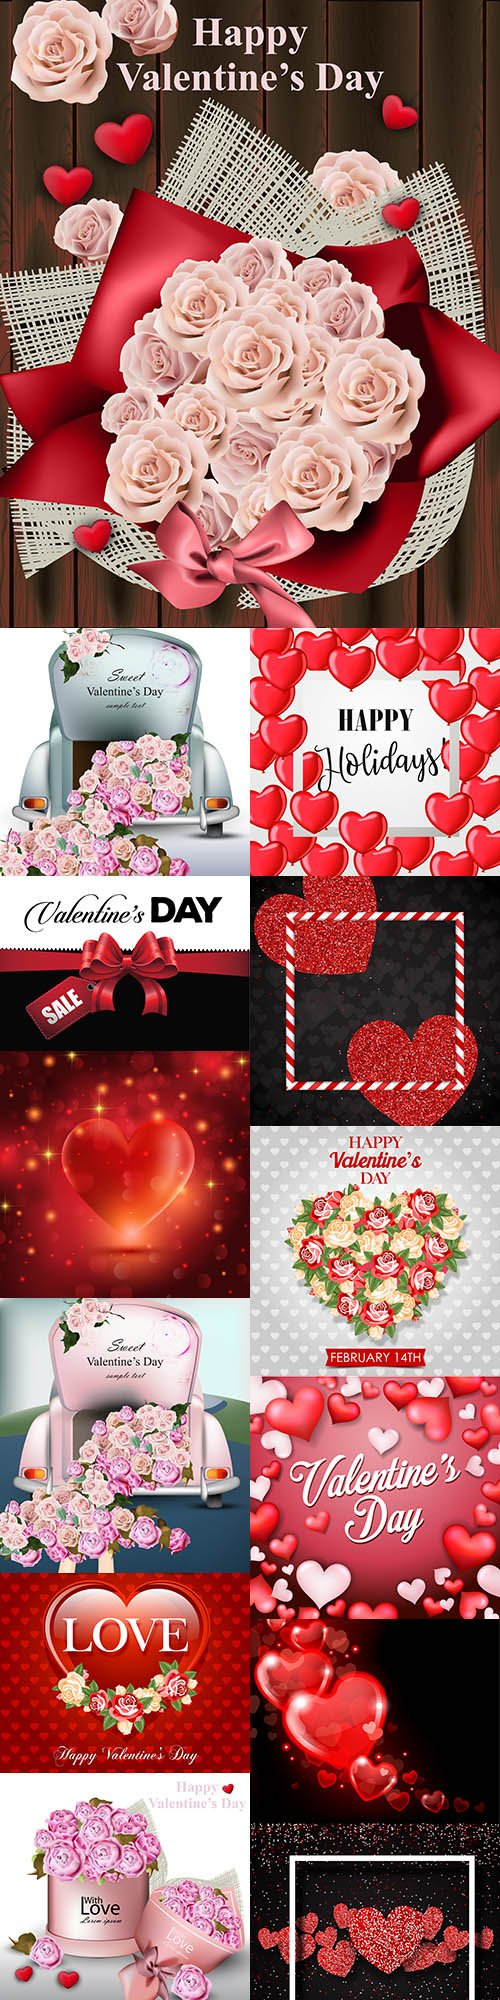 Happy Valentine's Day romantic decorative illustrations 26